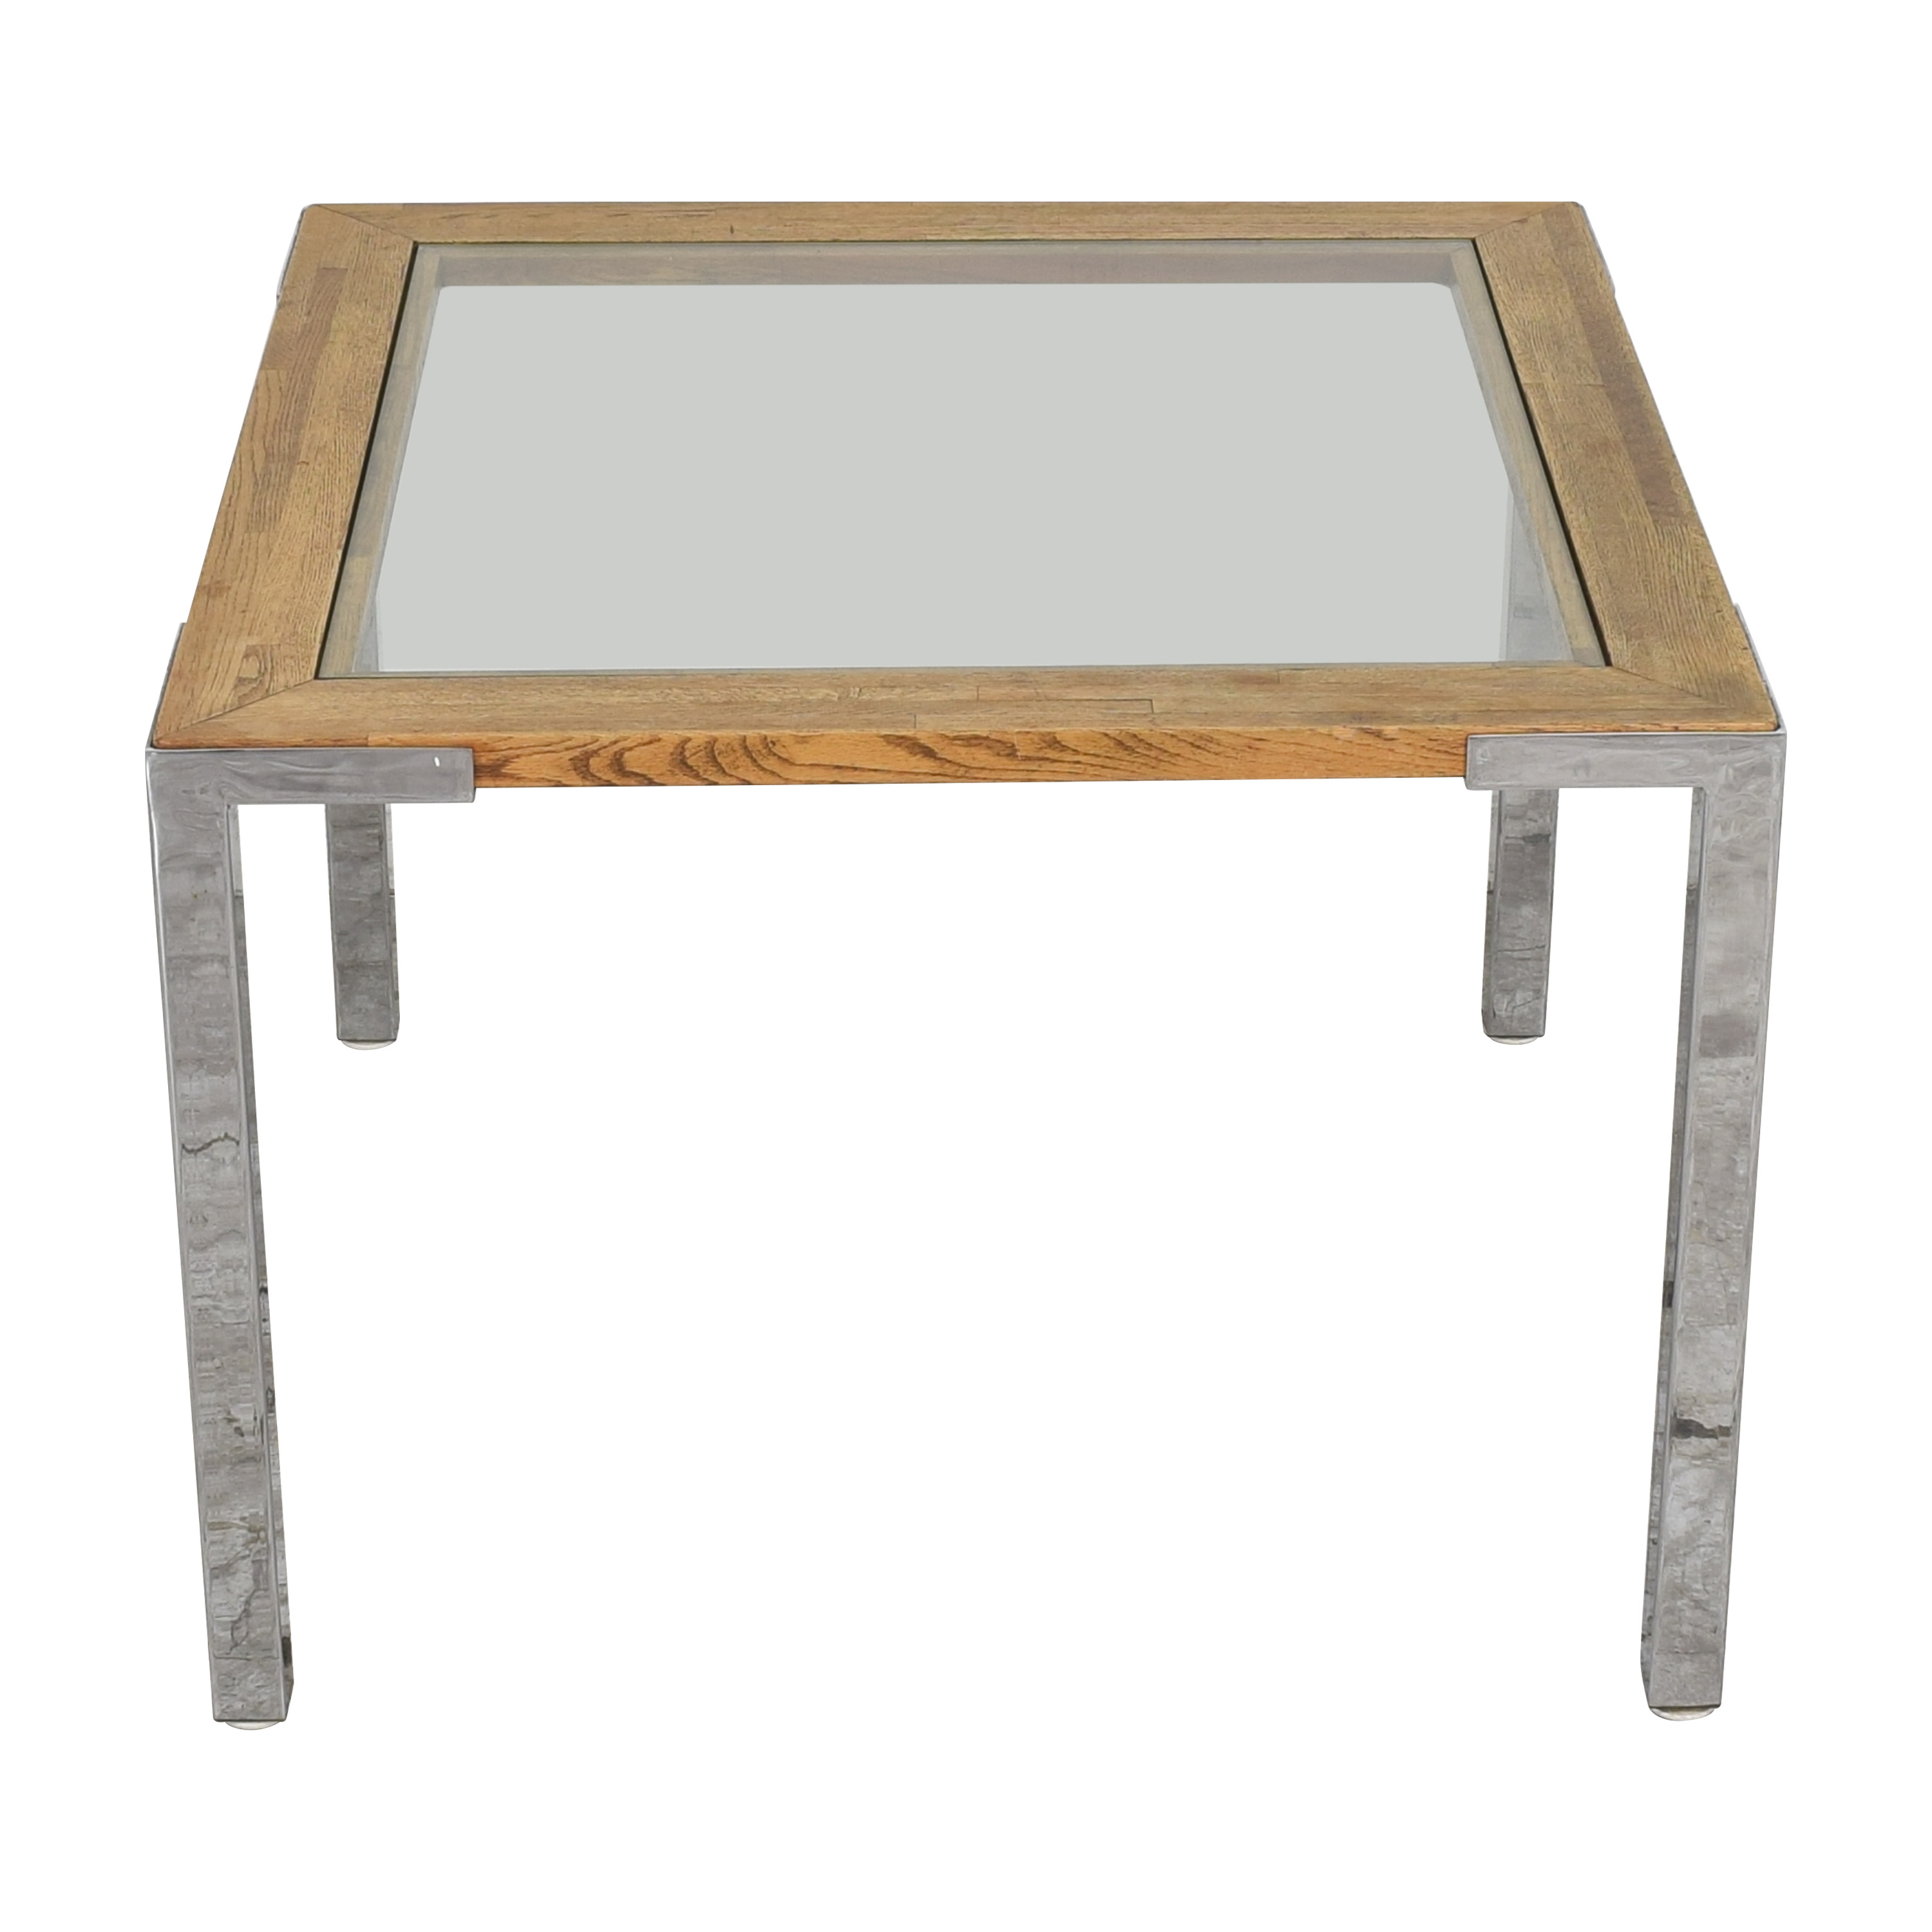 Mid Century Modern Square Dining Table nyc